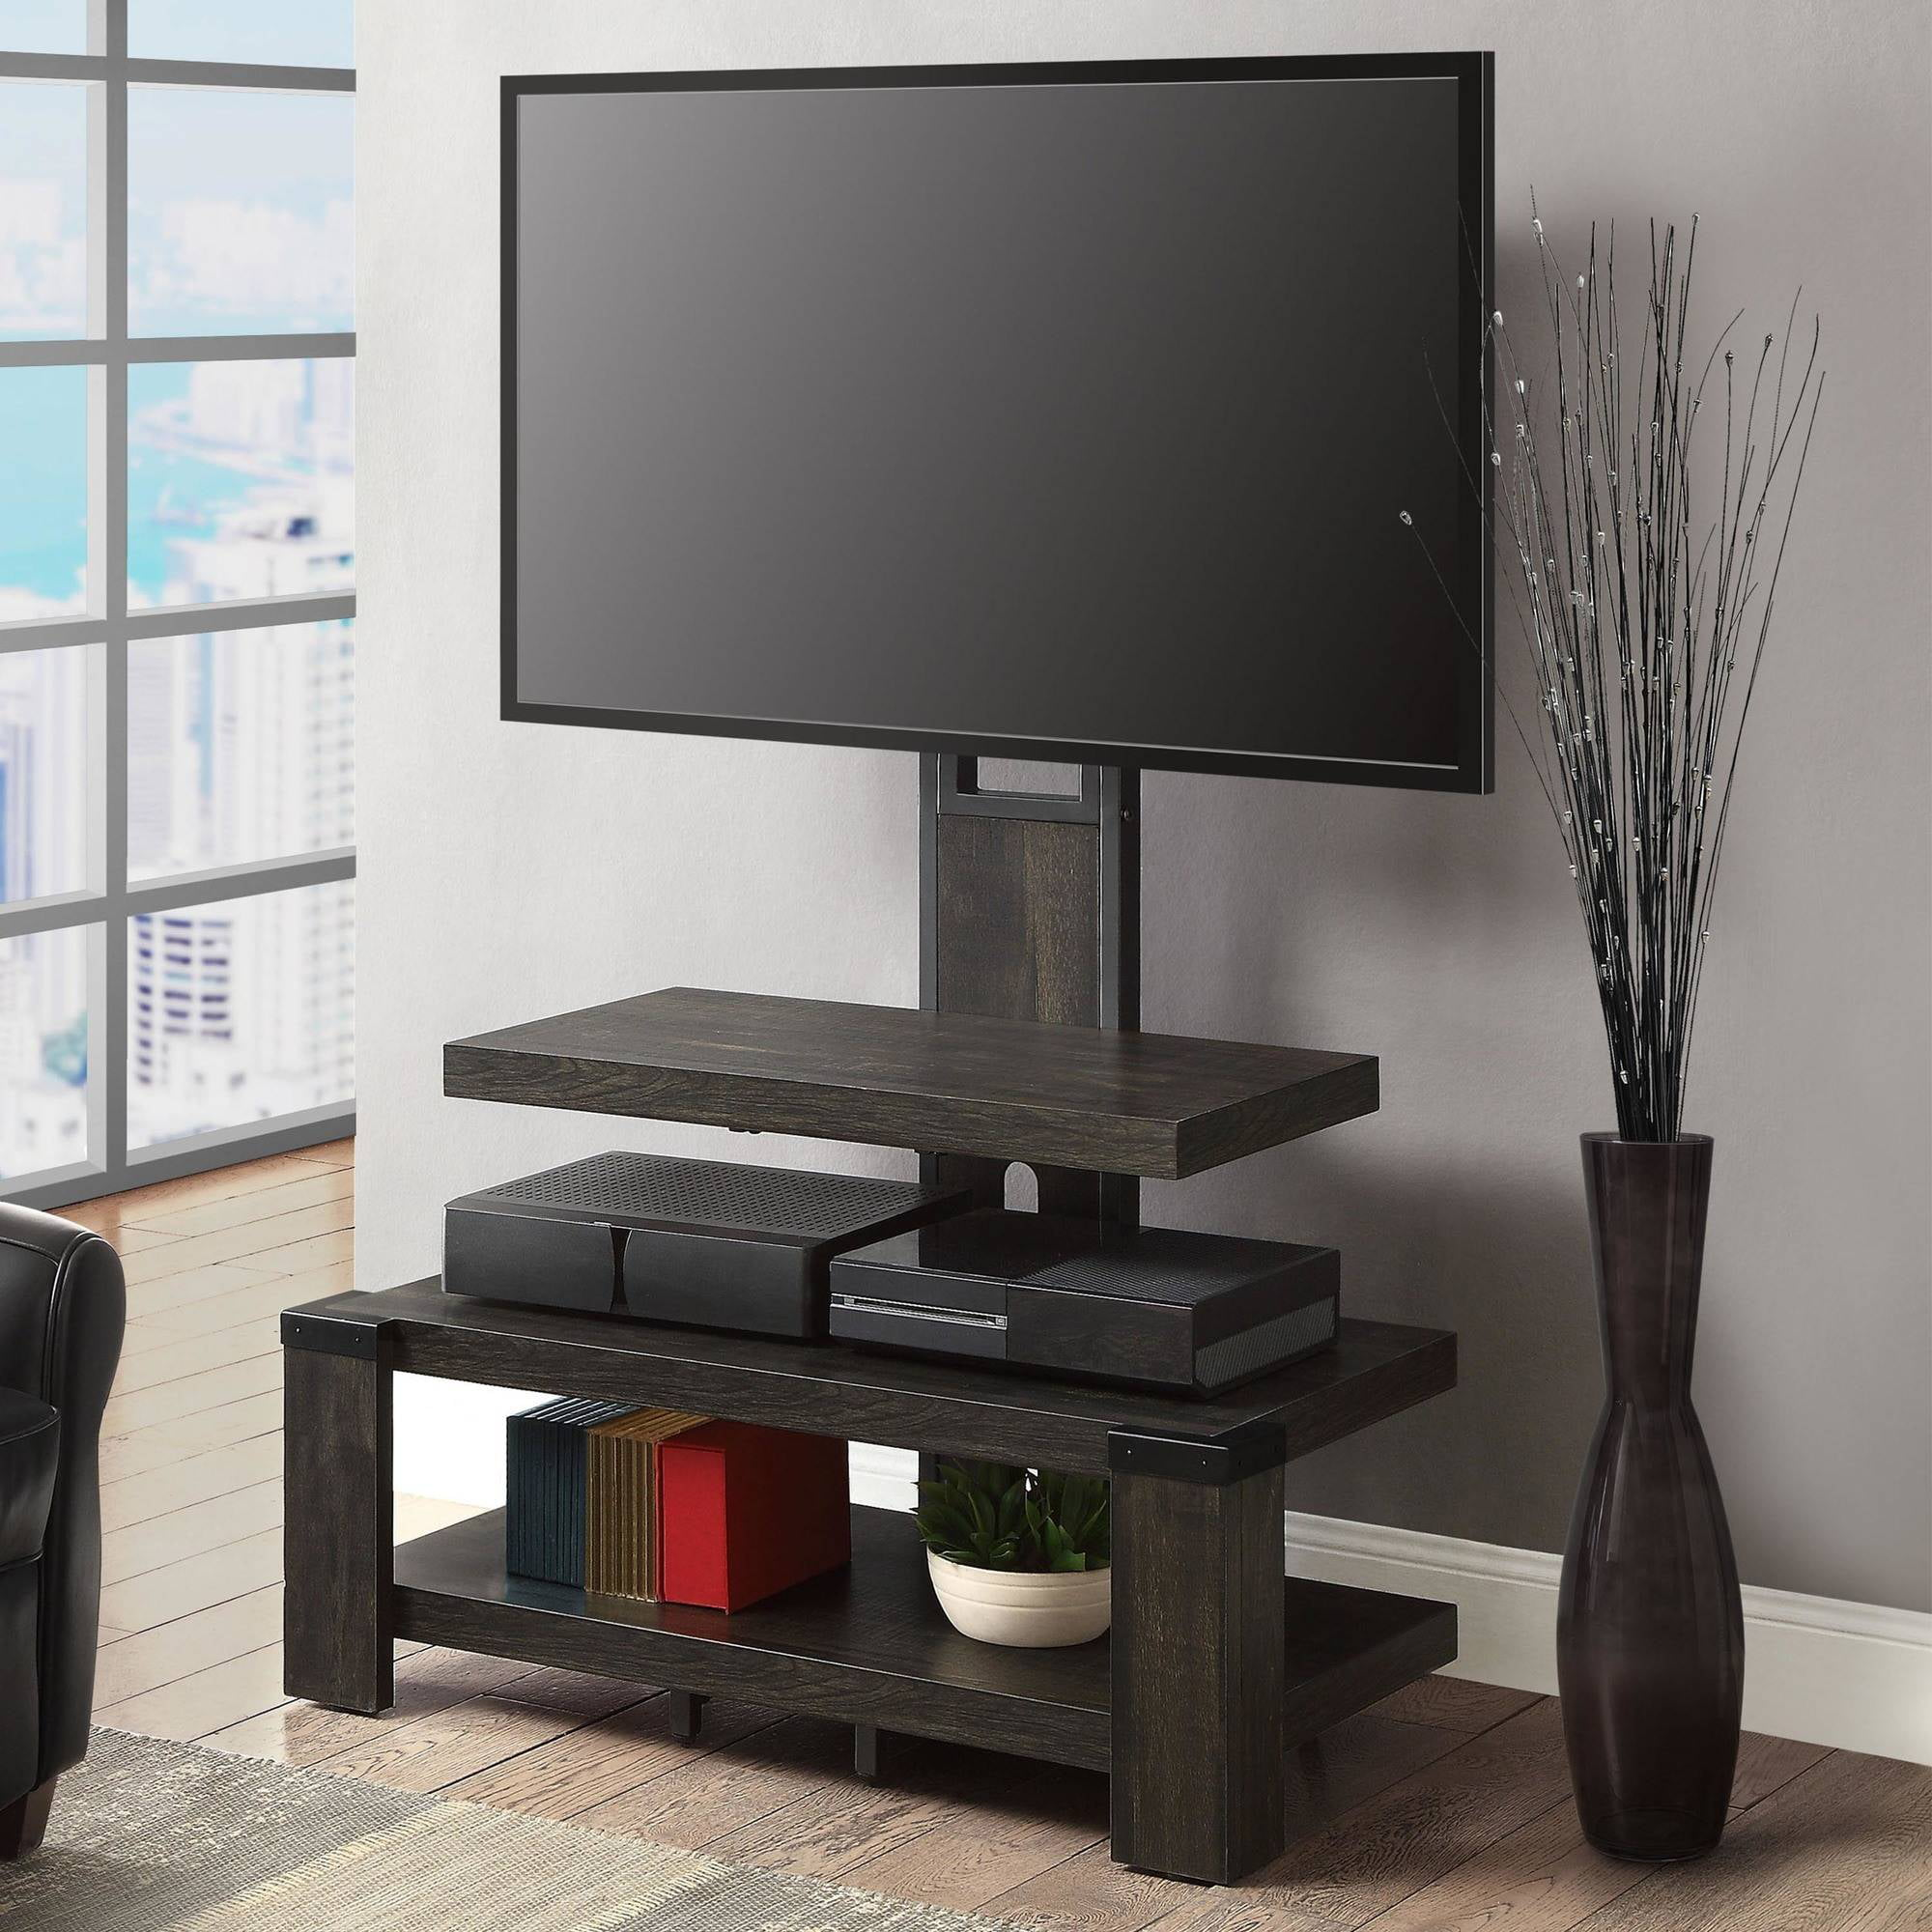 Whalen 3-Shelf Television Stand with Floater Mount for TVs up to